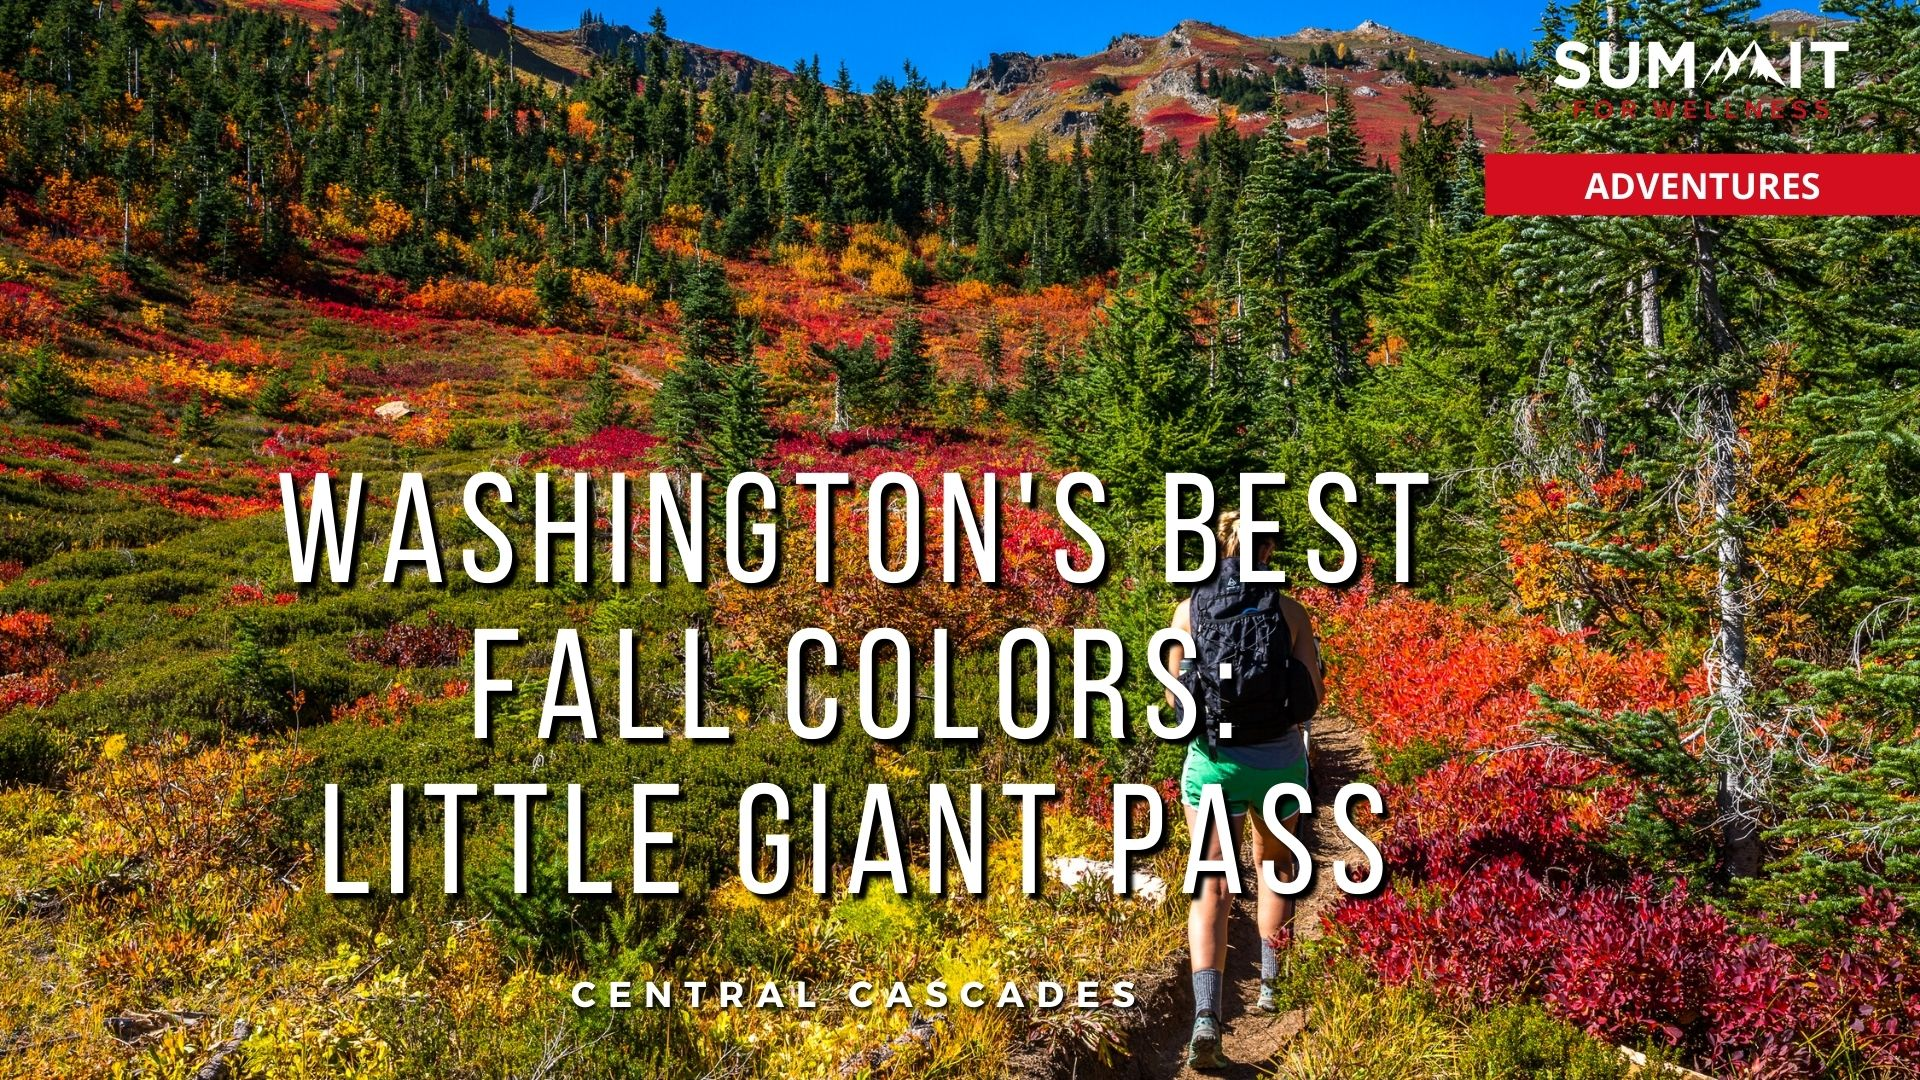 Day hike to Little Giant Pass to see the fall colors